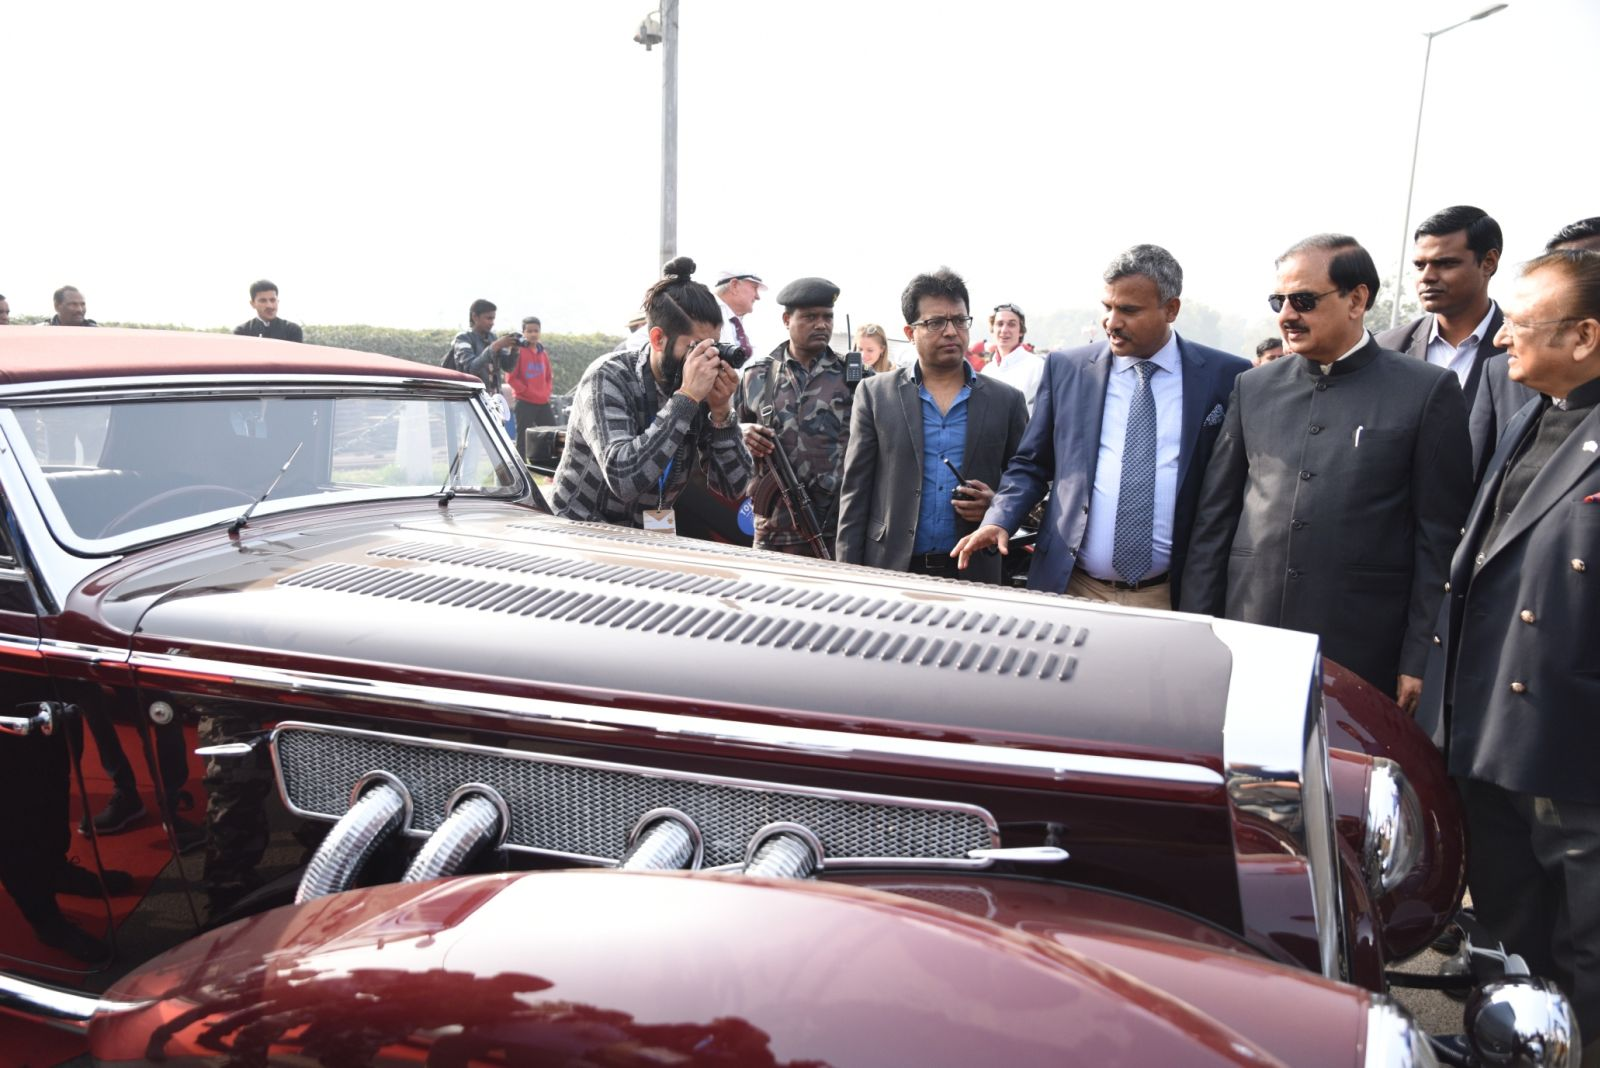 21 Gun Salute Vintage Rally Witnesses Participation Of 125